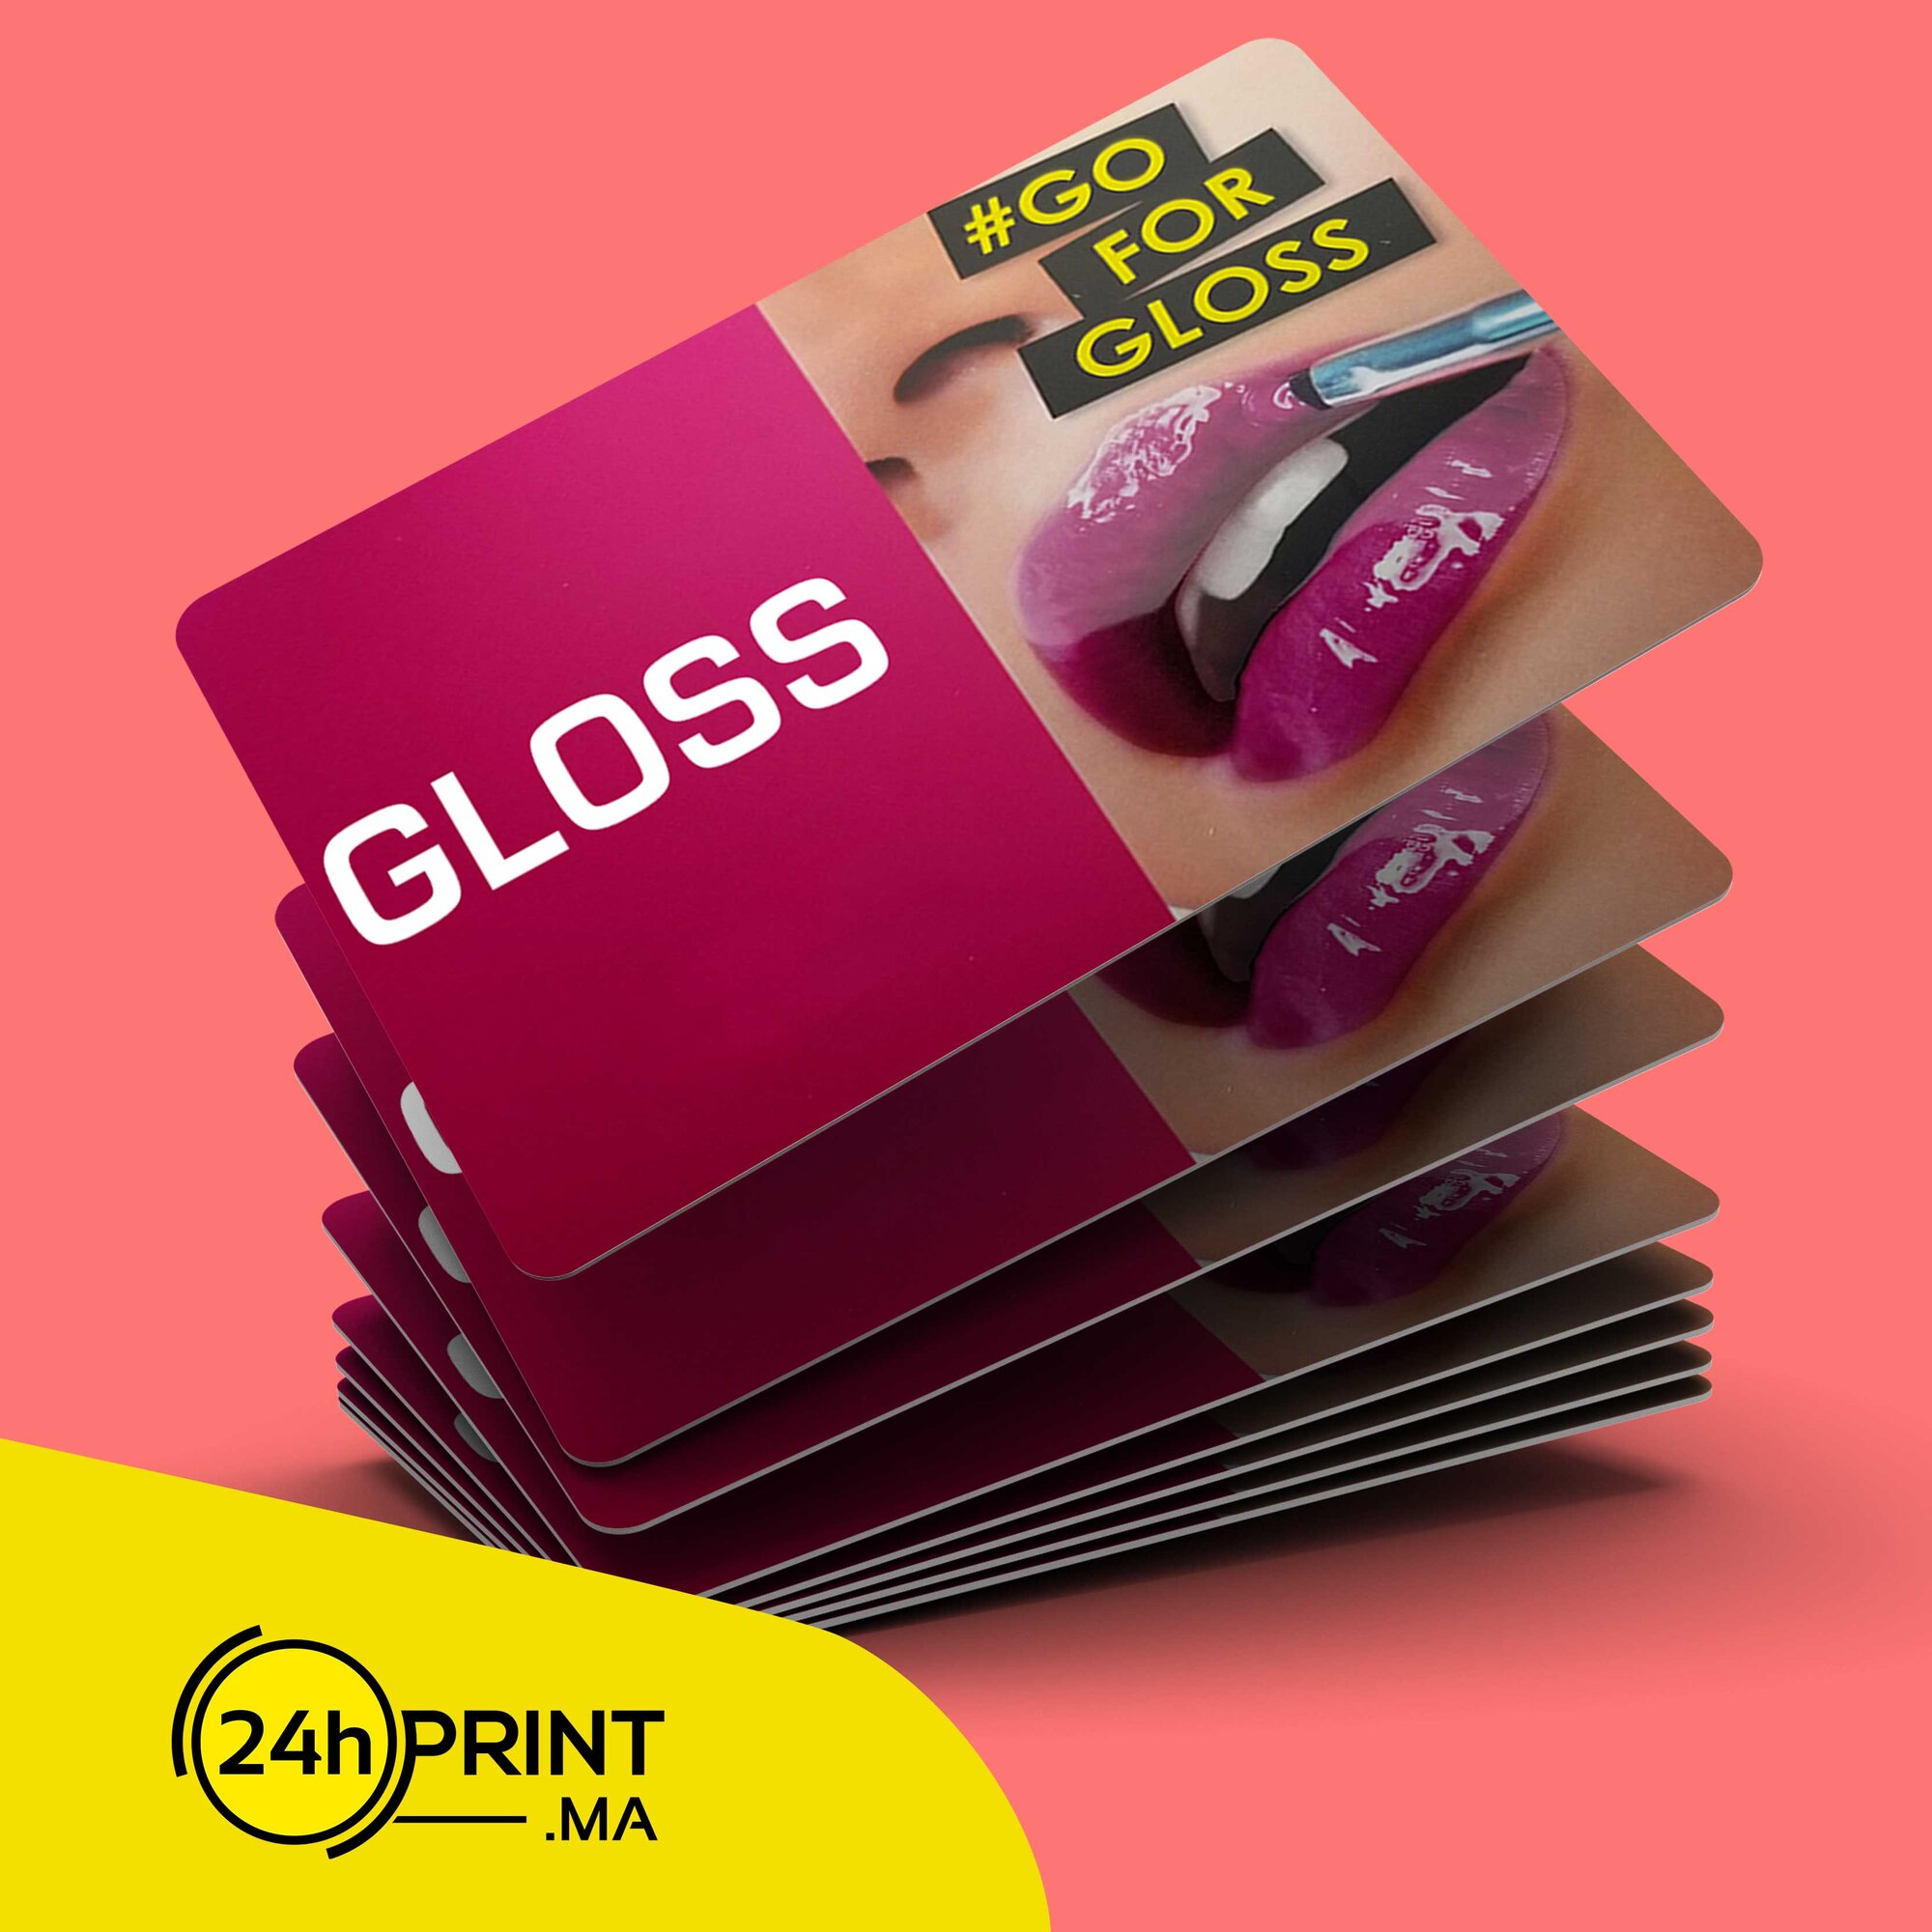 https://www.24hprint.ma/images/products_gallery_images/702_VERNIS-3D-GLOSS2.jpg